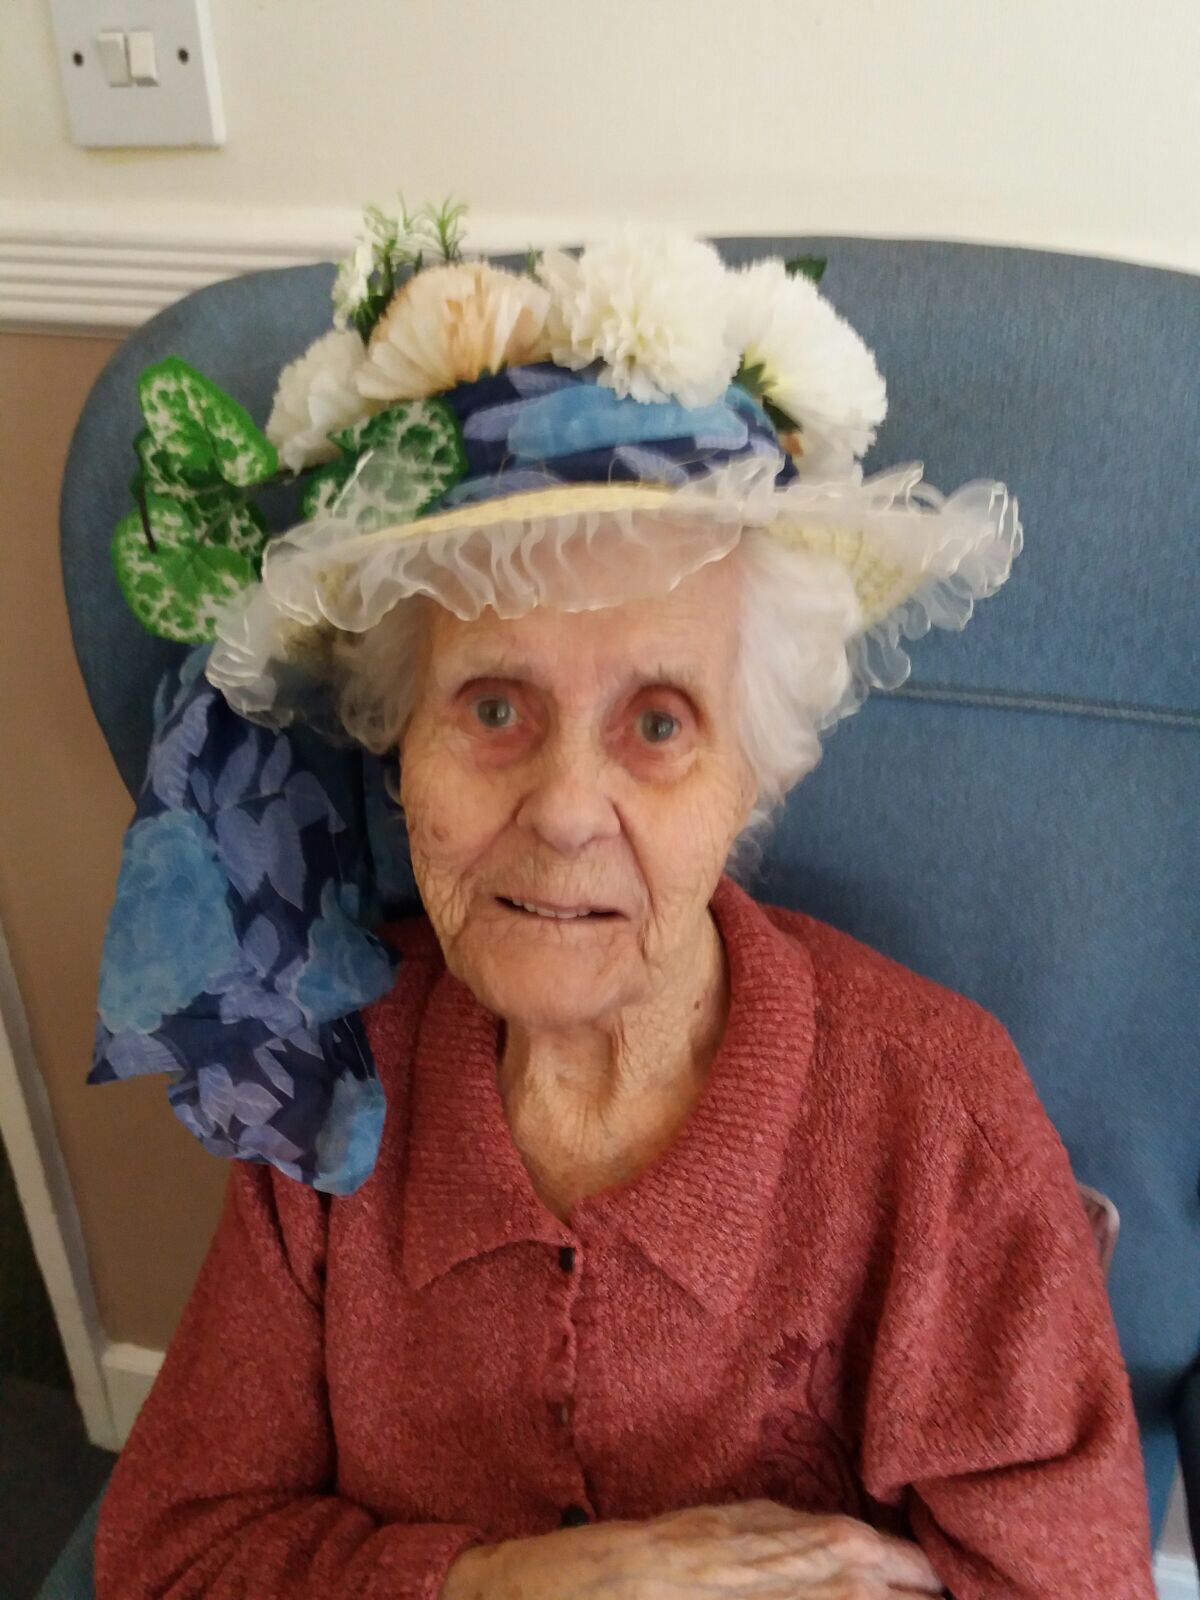 Easter Bonnet 2017: Key Healthcare is dedicated to caring for elderly residents in safe. We have multiple dementia care homes including our care home middlesbrough, our care home St. Helen and care home saltburn. We excel in monitoring and improving care levels.